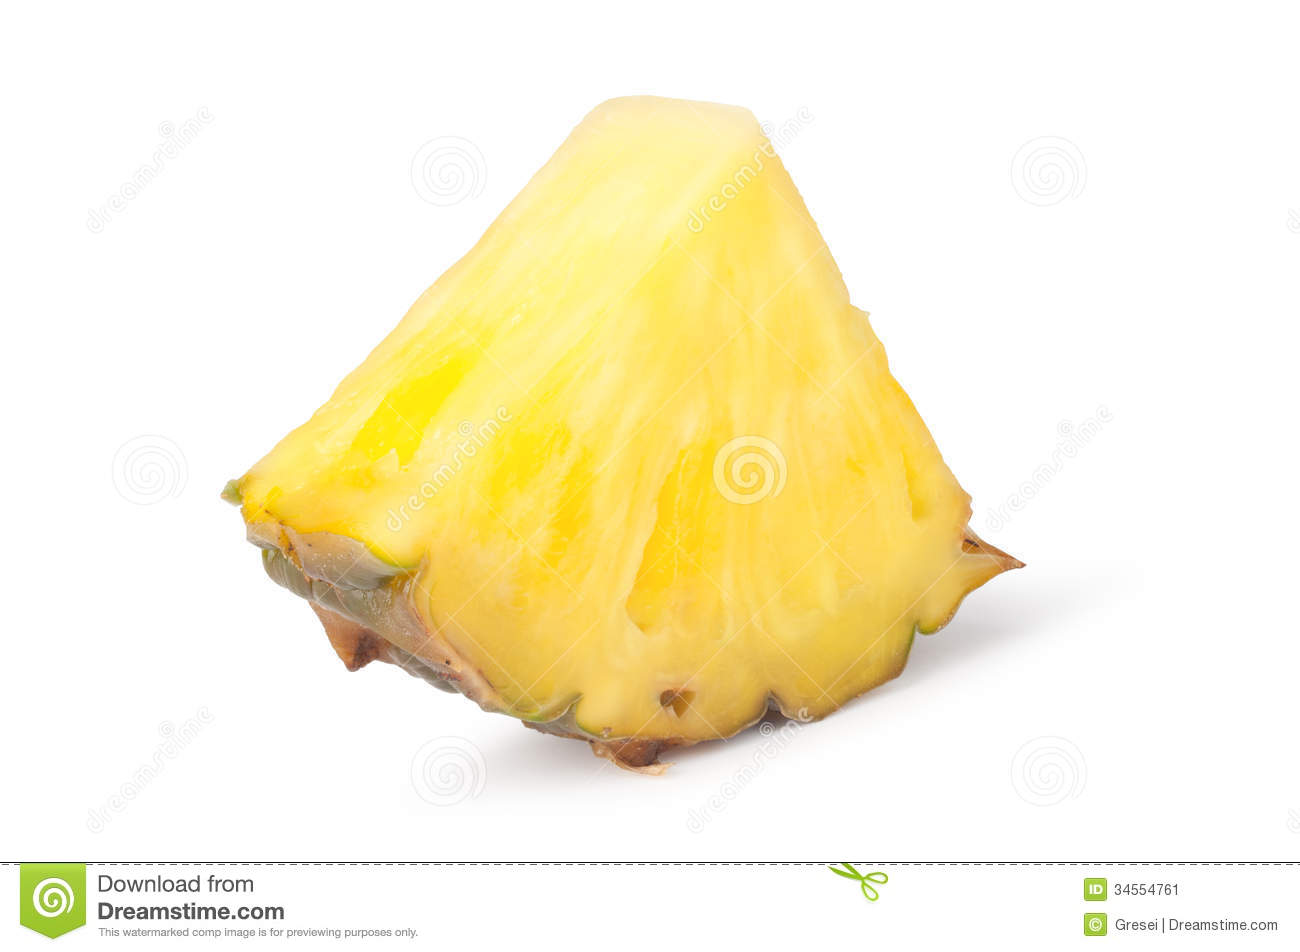 Pineapple Slices Stock Image - Image: 34554761